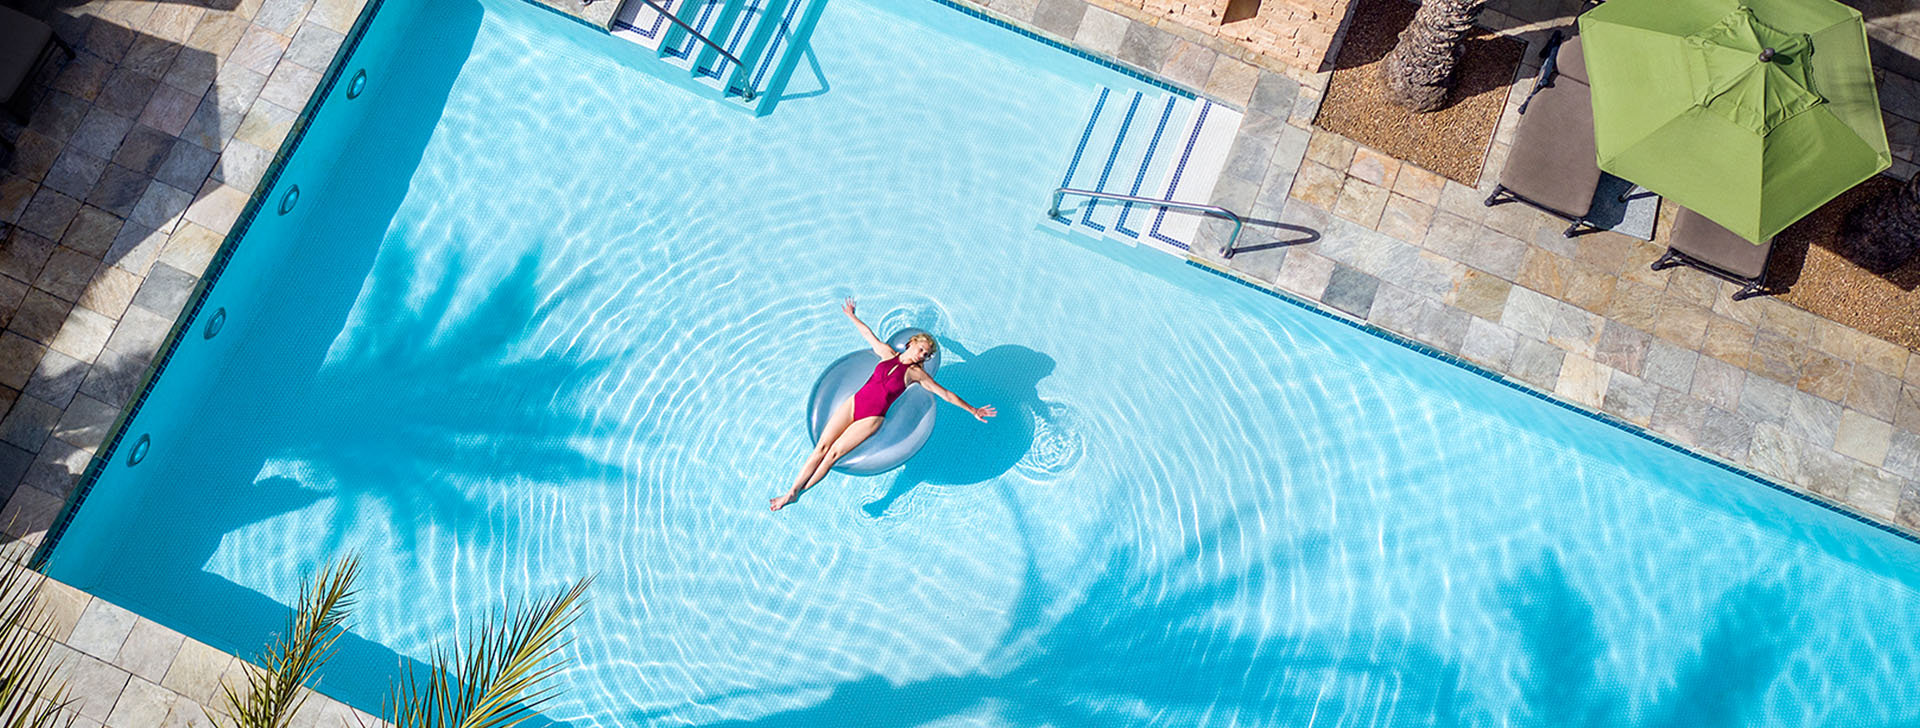 Kids enjoy swimming at Fairmont Scottsdale Princess, Arizona